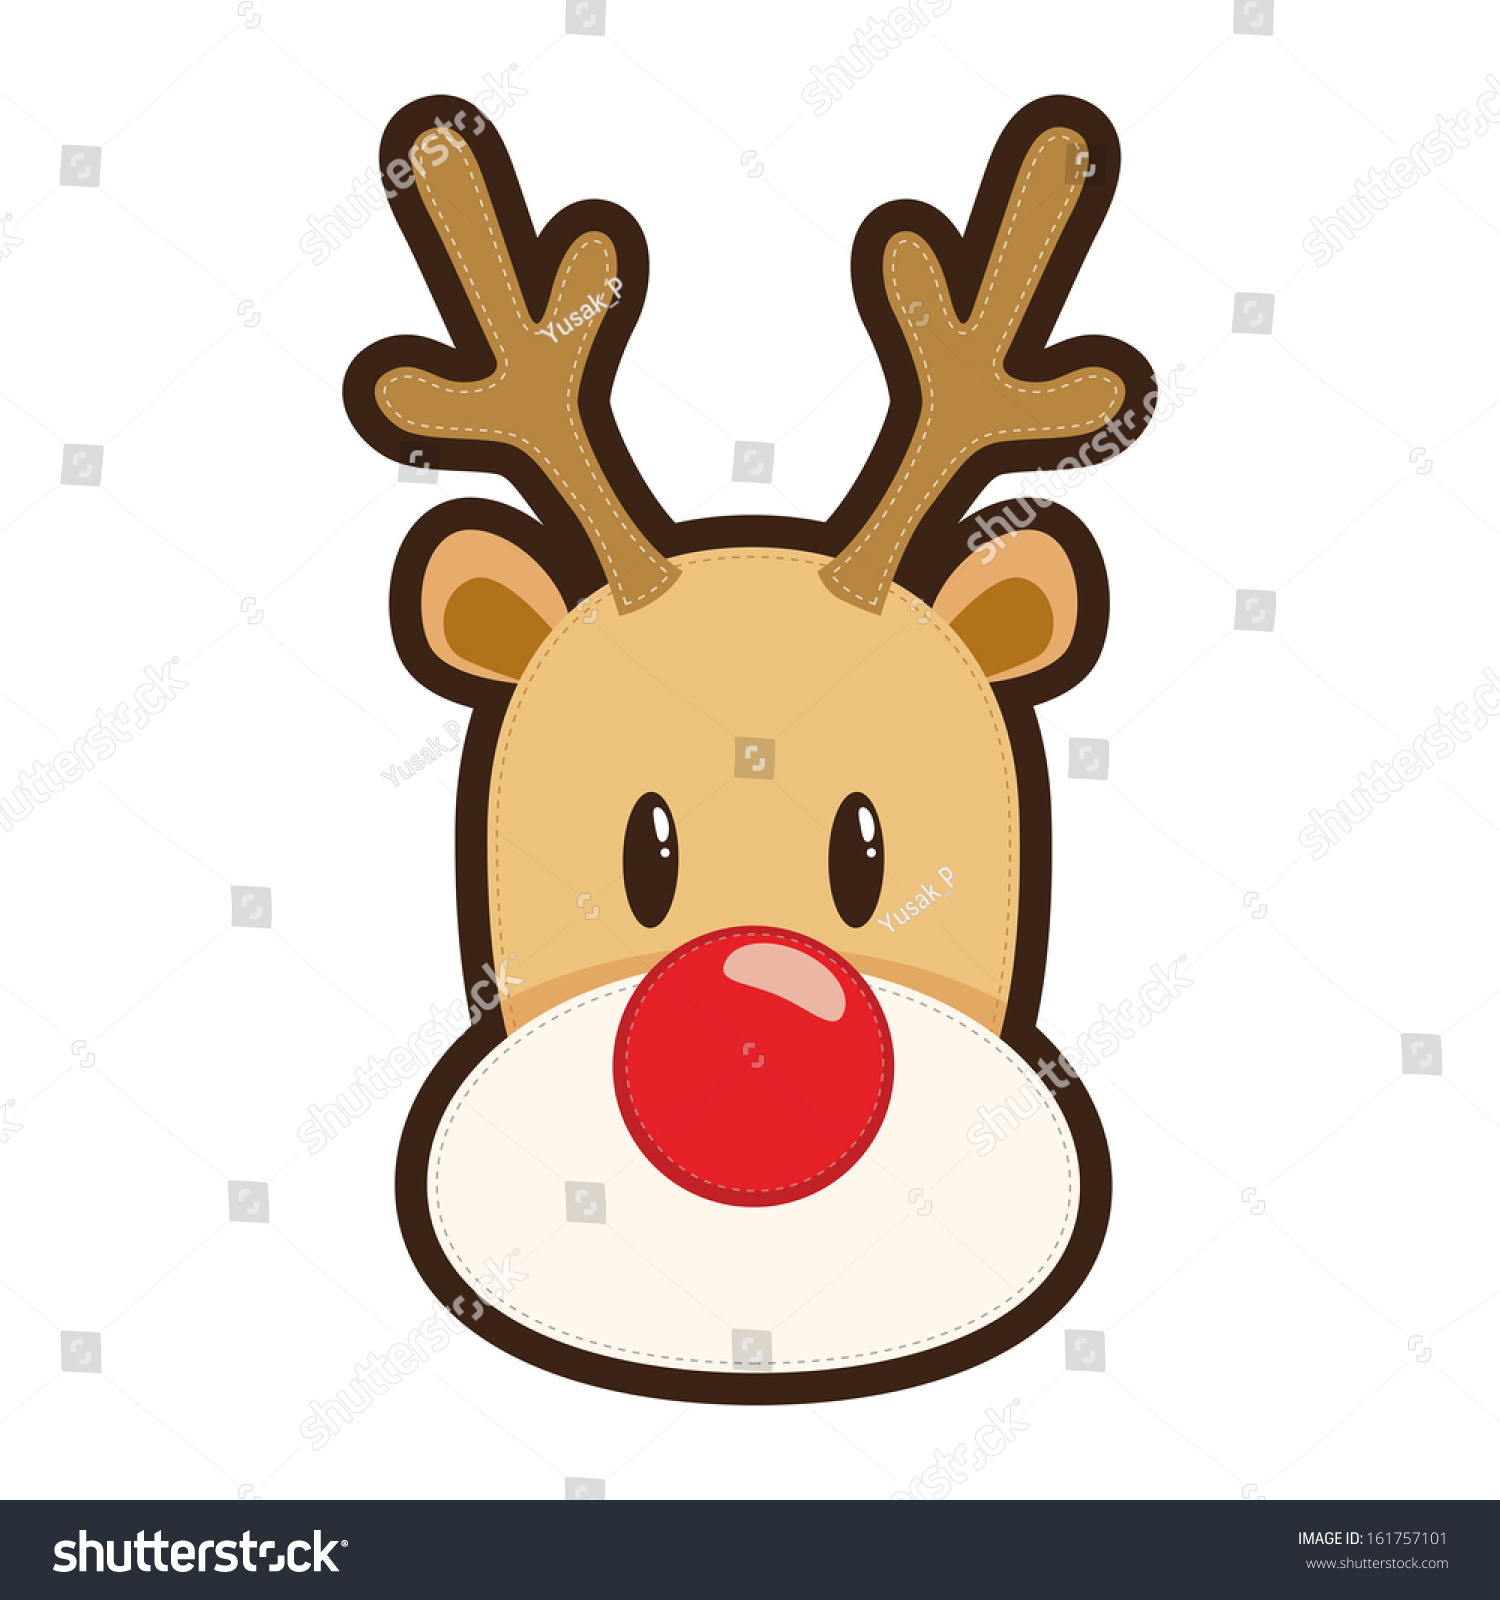 ... Of A Face Of Rudolf Red Nosed Reindeer - 161757101 : Shutterstock